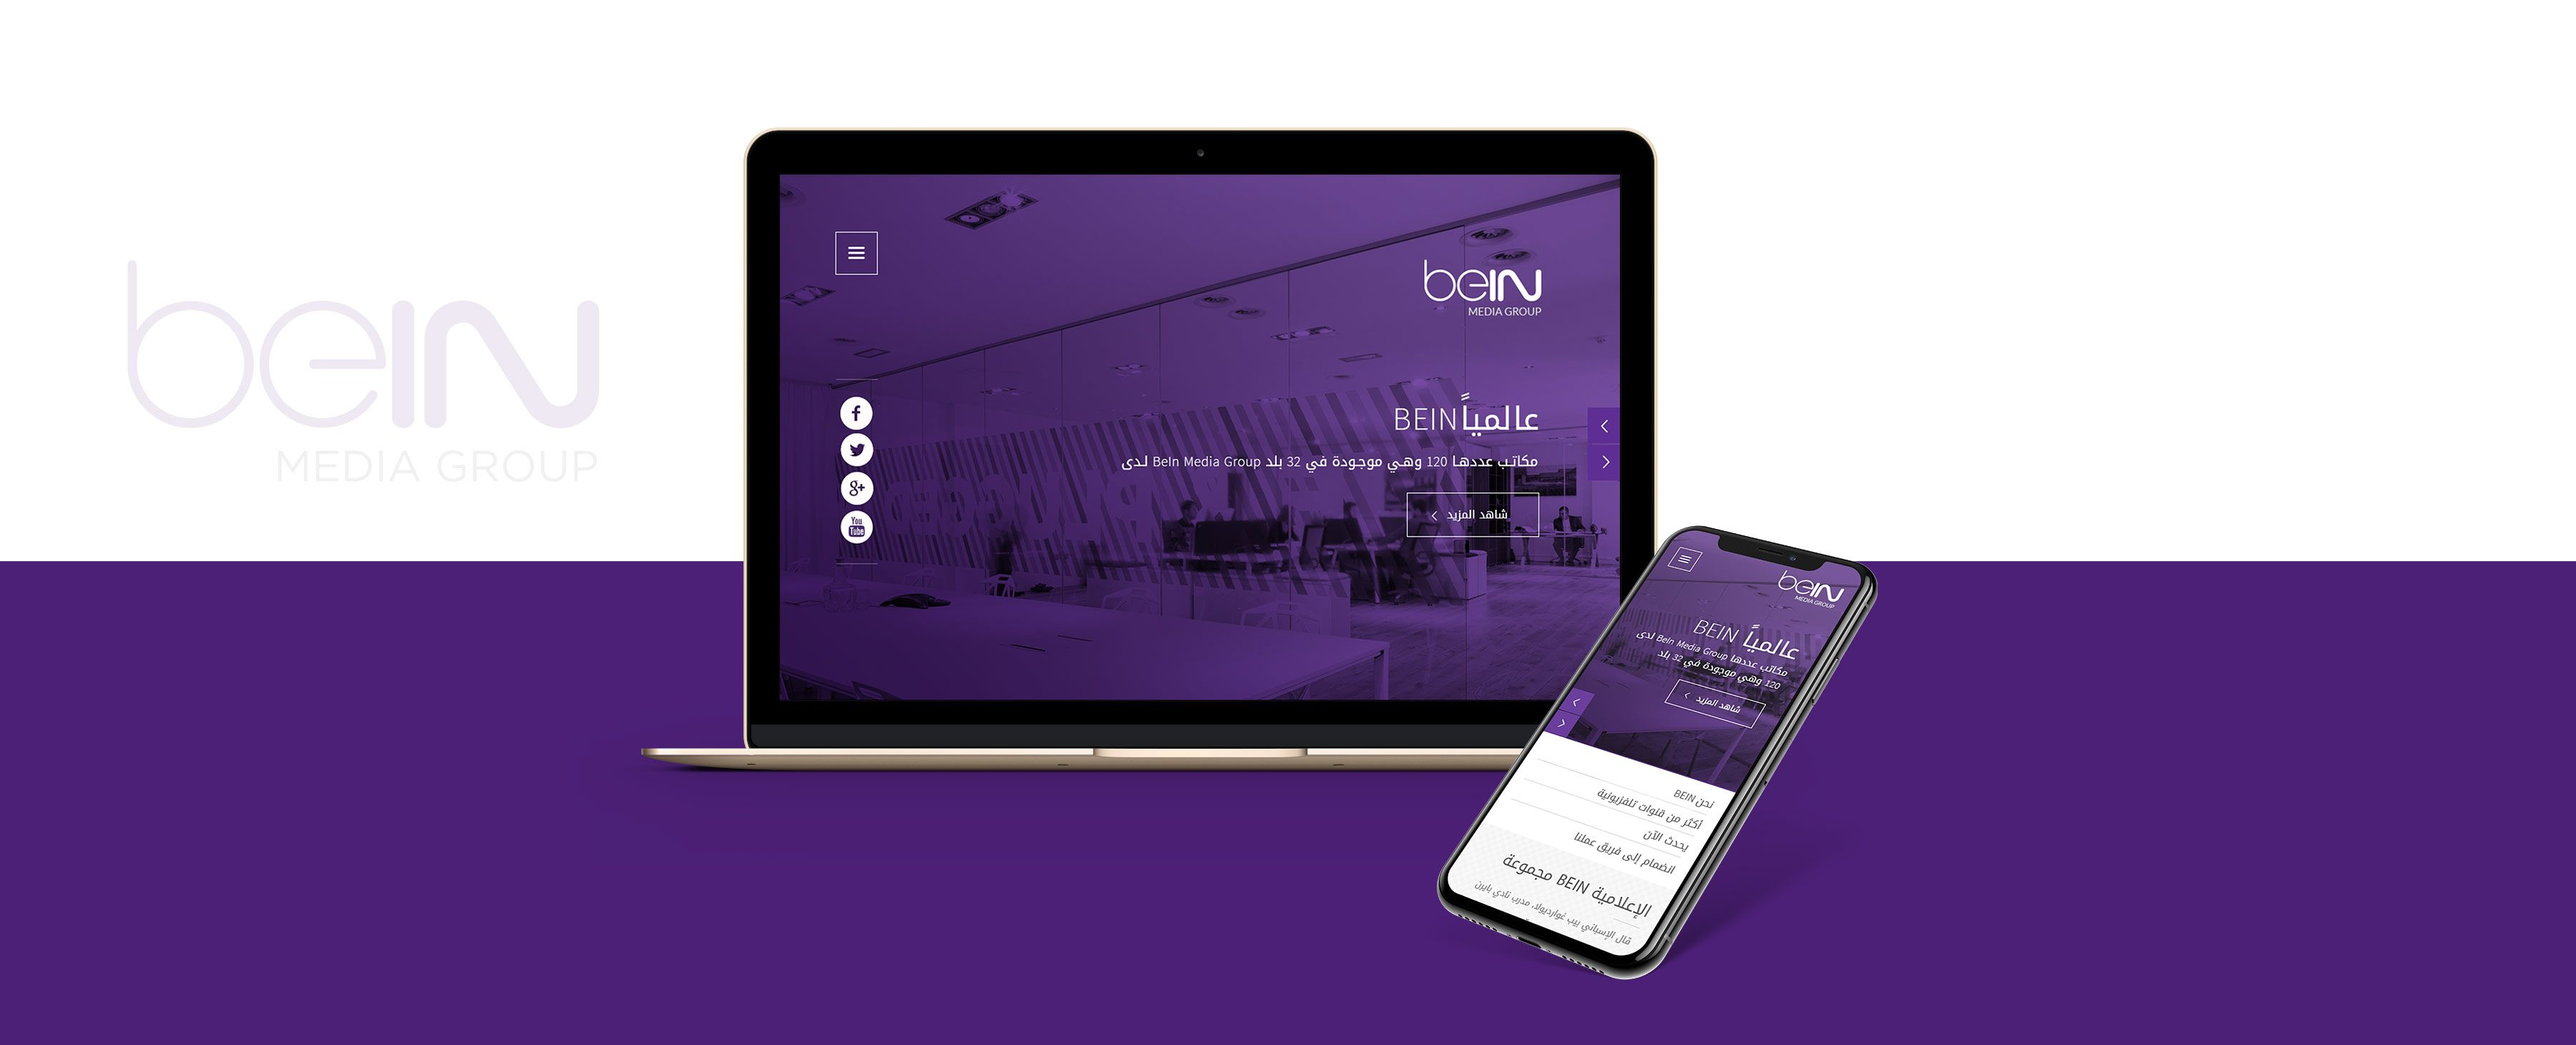 beIN MEDIA GROUP par Agence Web Kernix